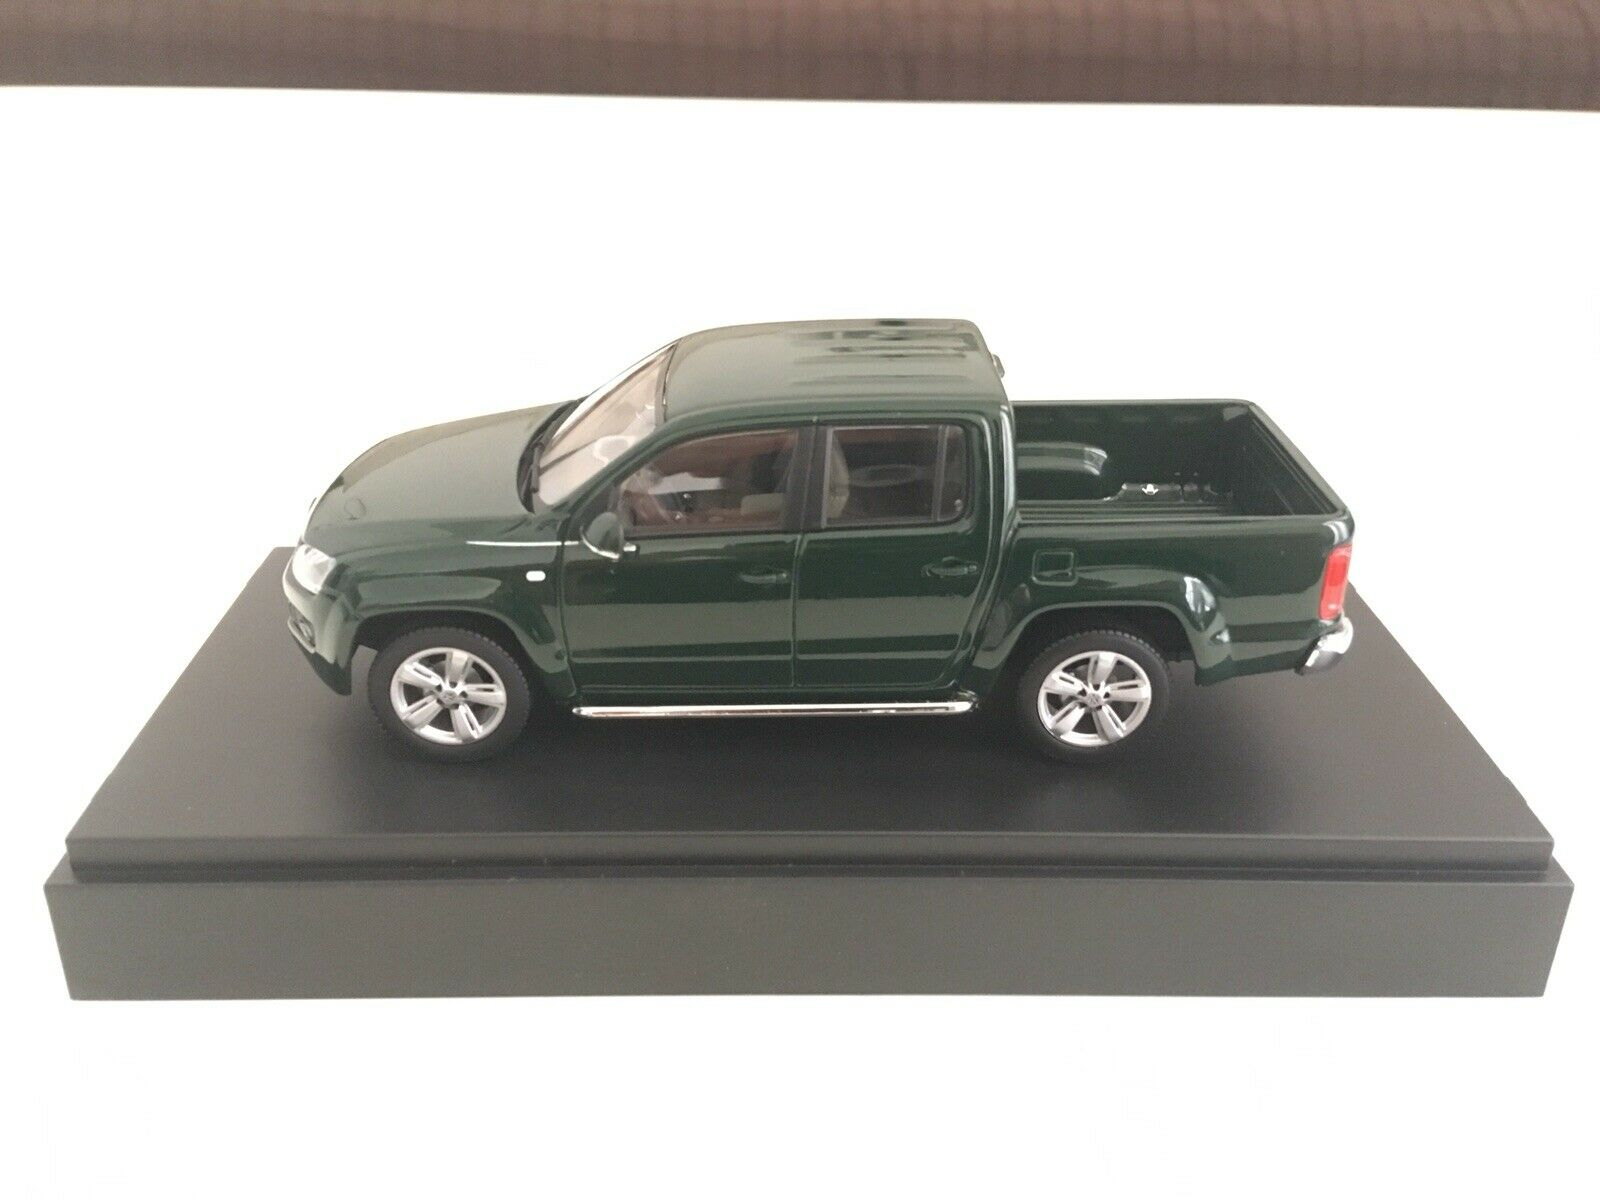 VW Amarok - 1 43 scale - Minichamps